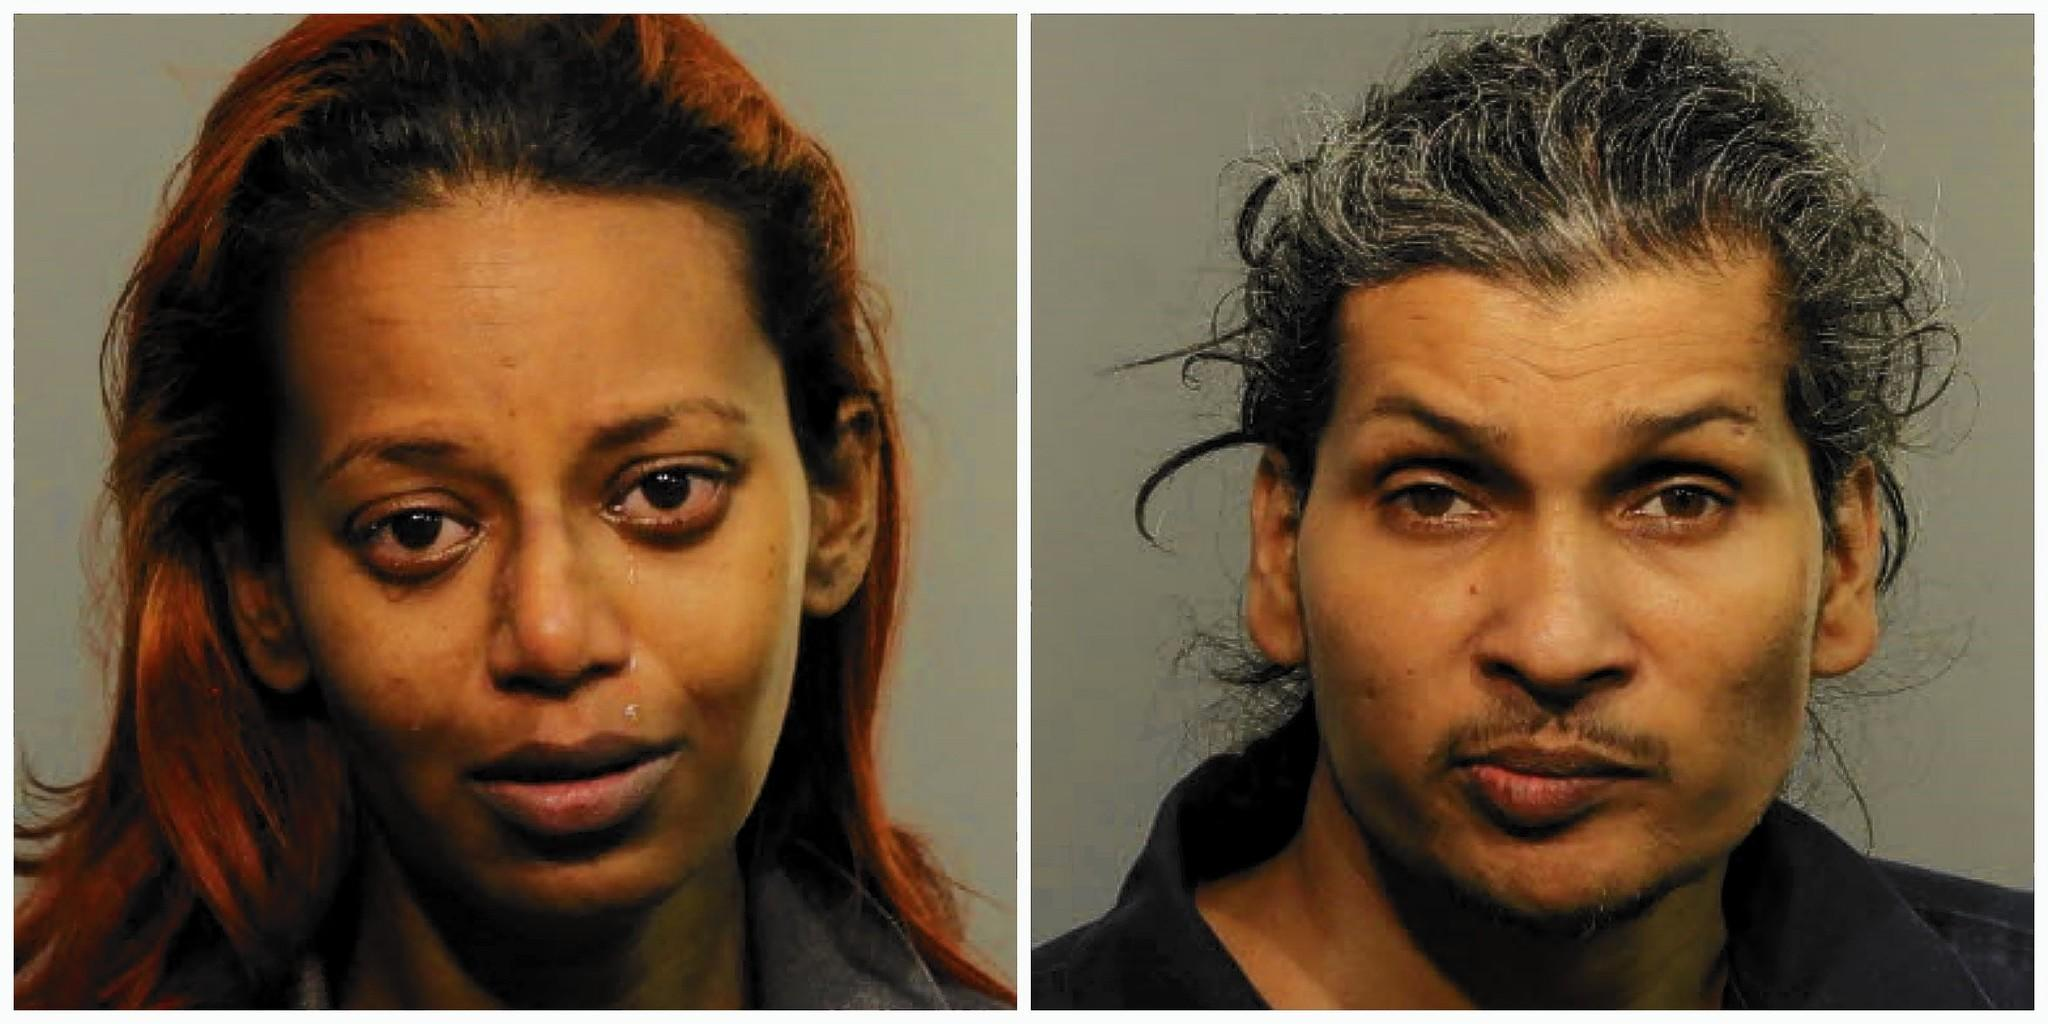 Roseanna Prasnauth and Rakesh Persaud were arrested after Sanford police said they beat his teenage child as punishment.